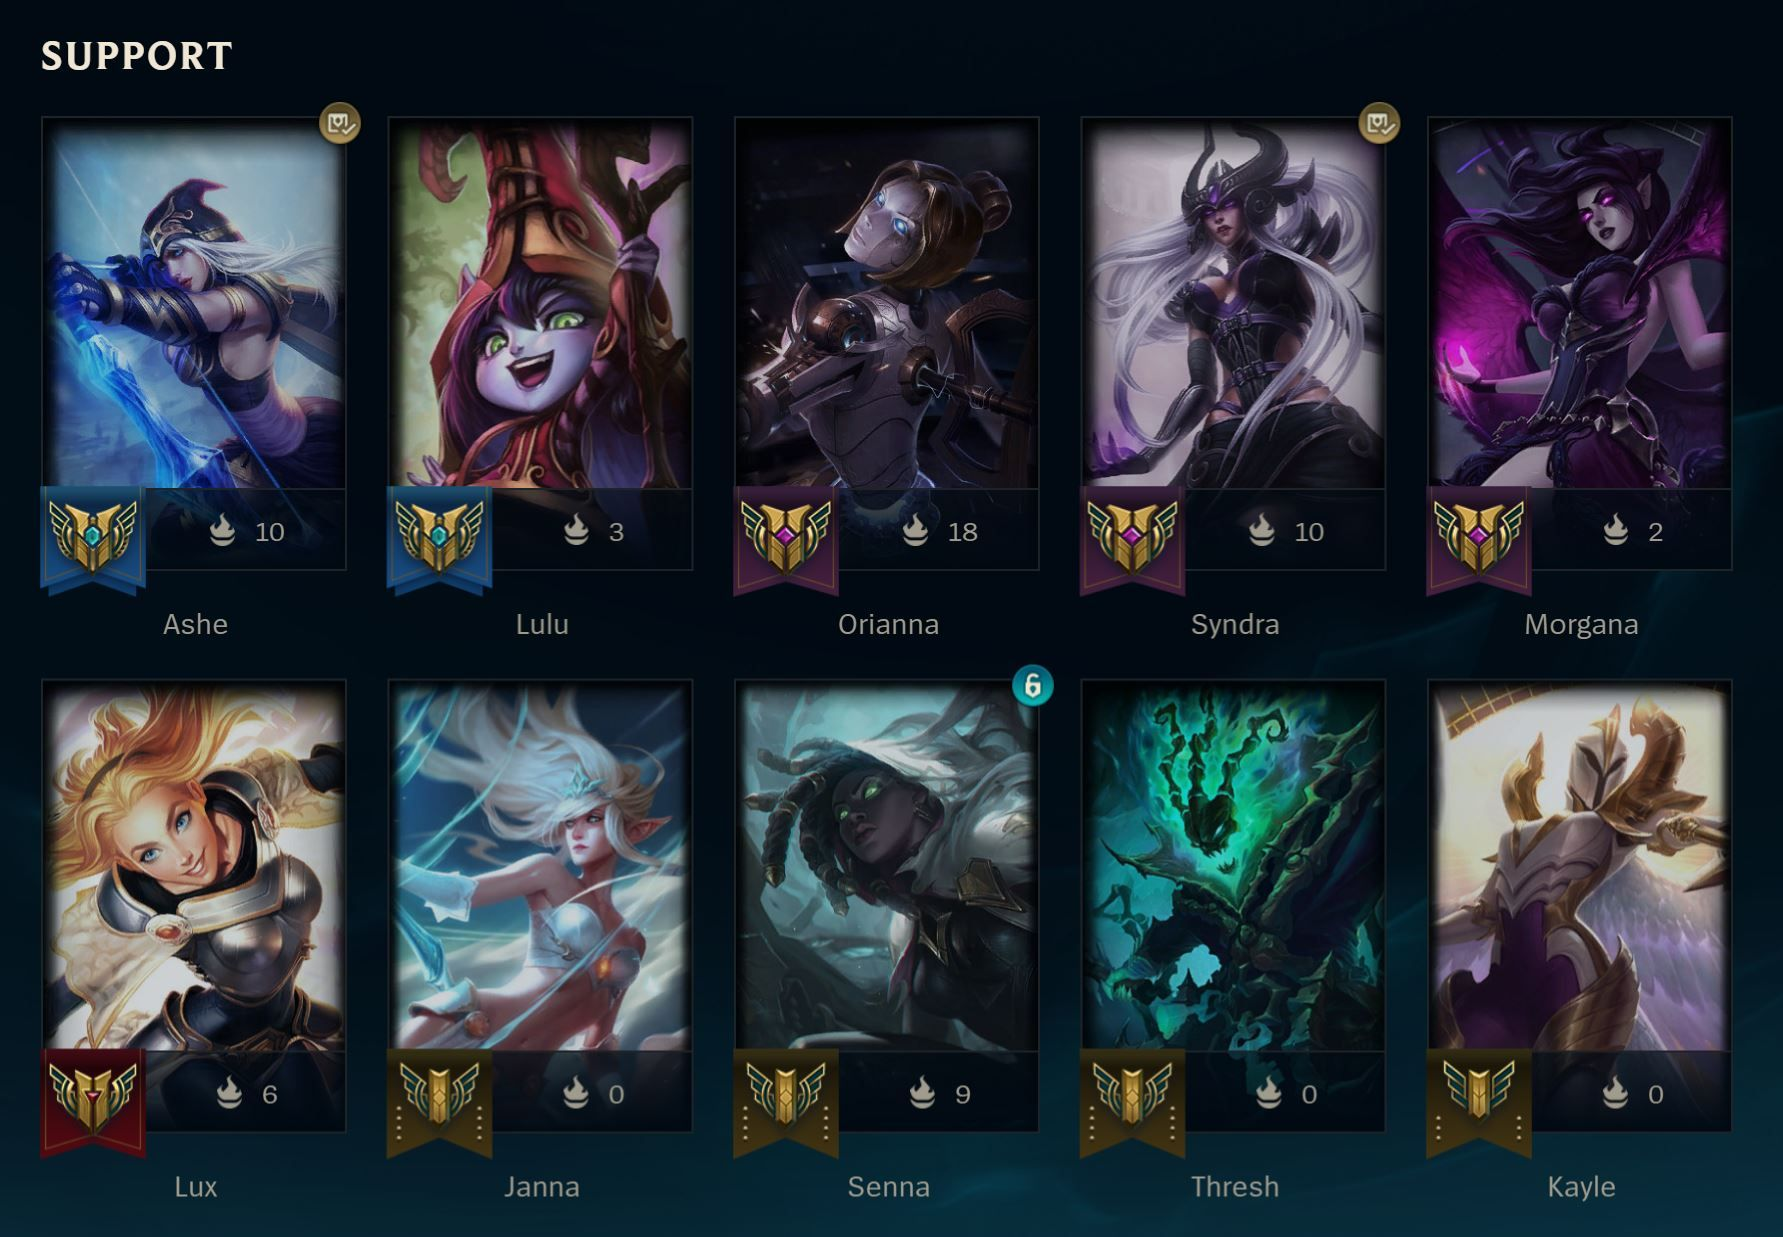 Support Champions in League of Legends